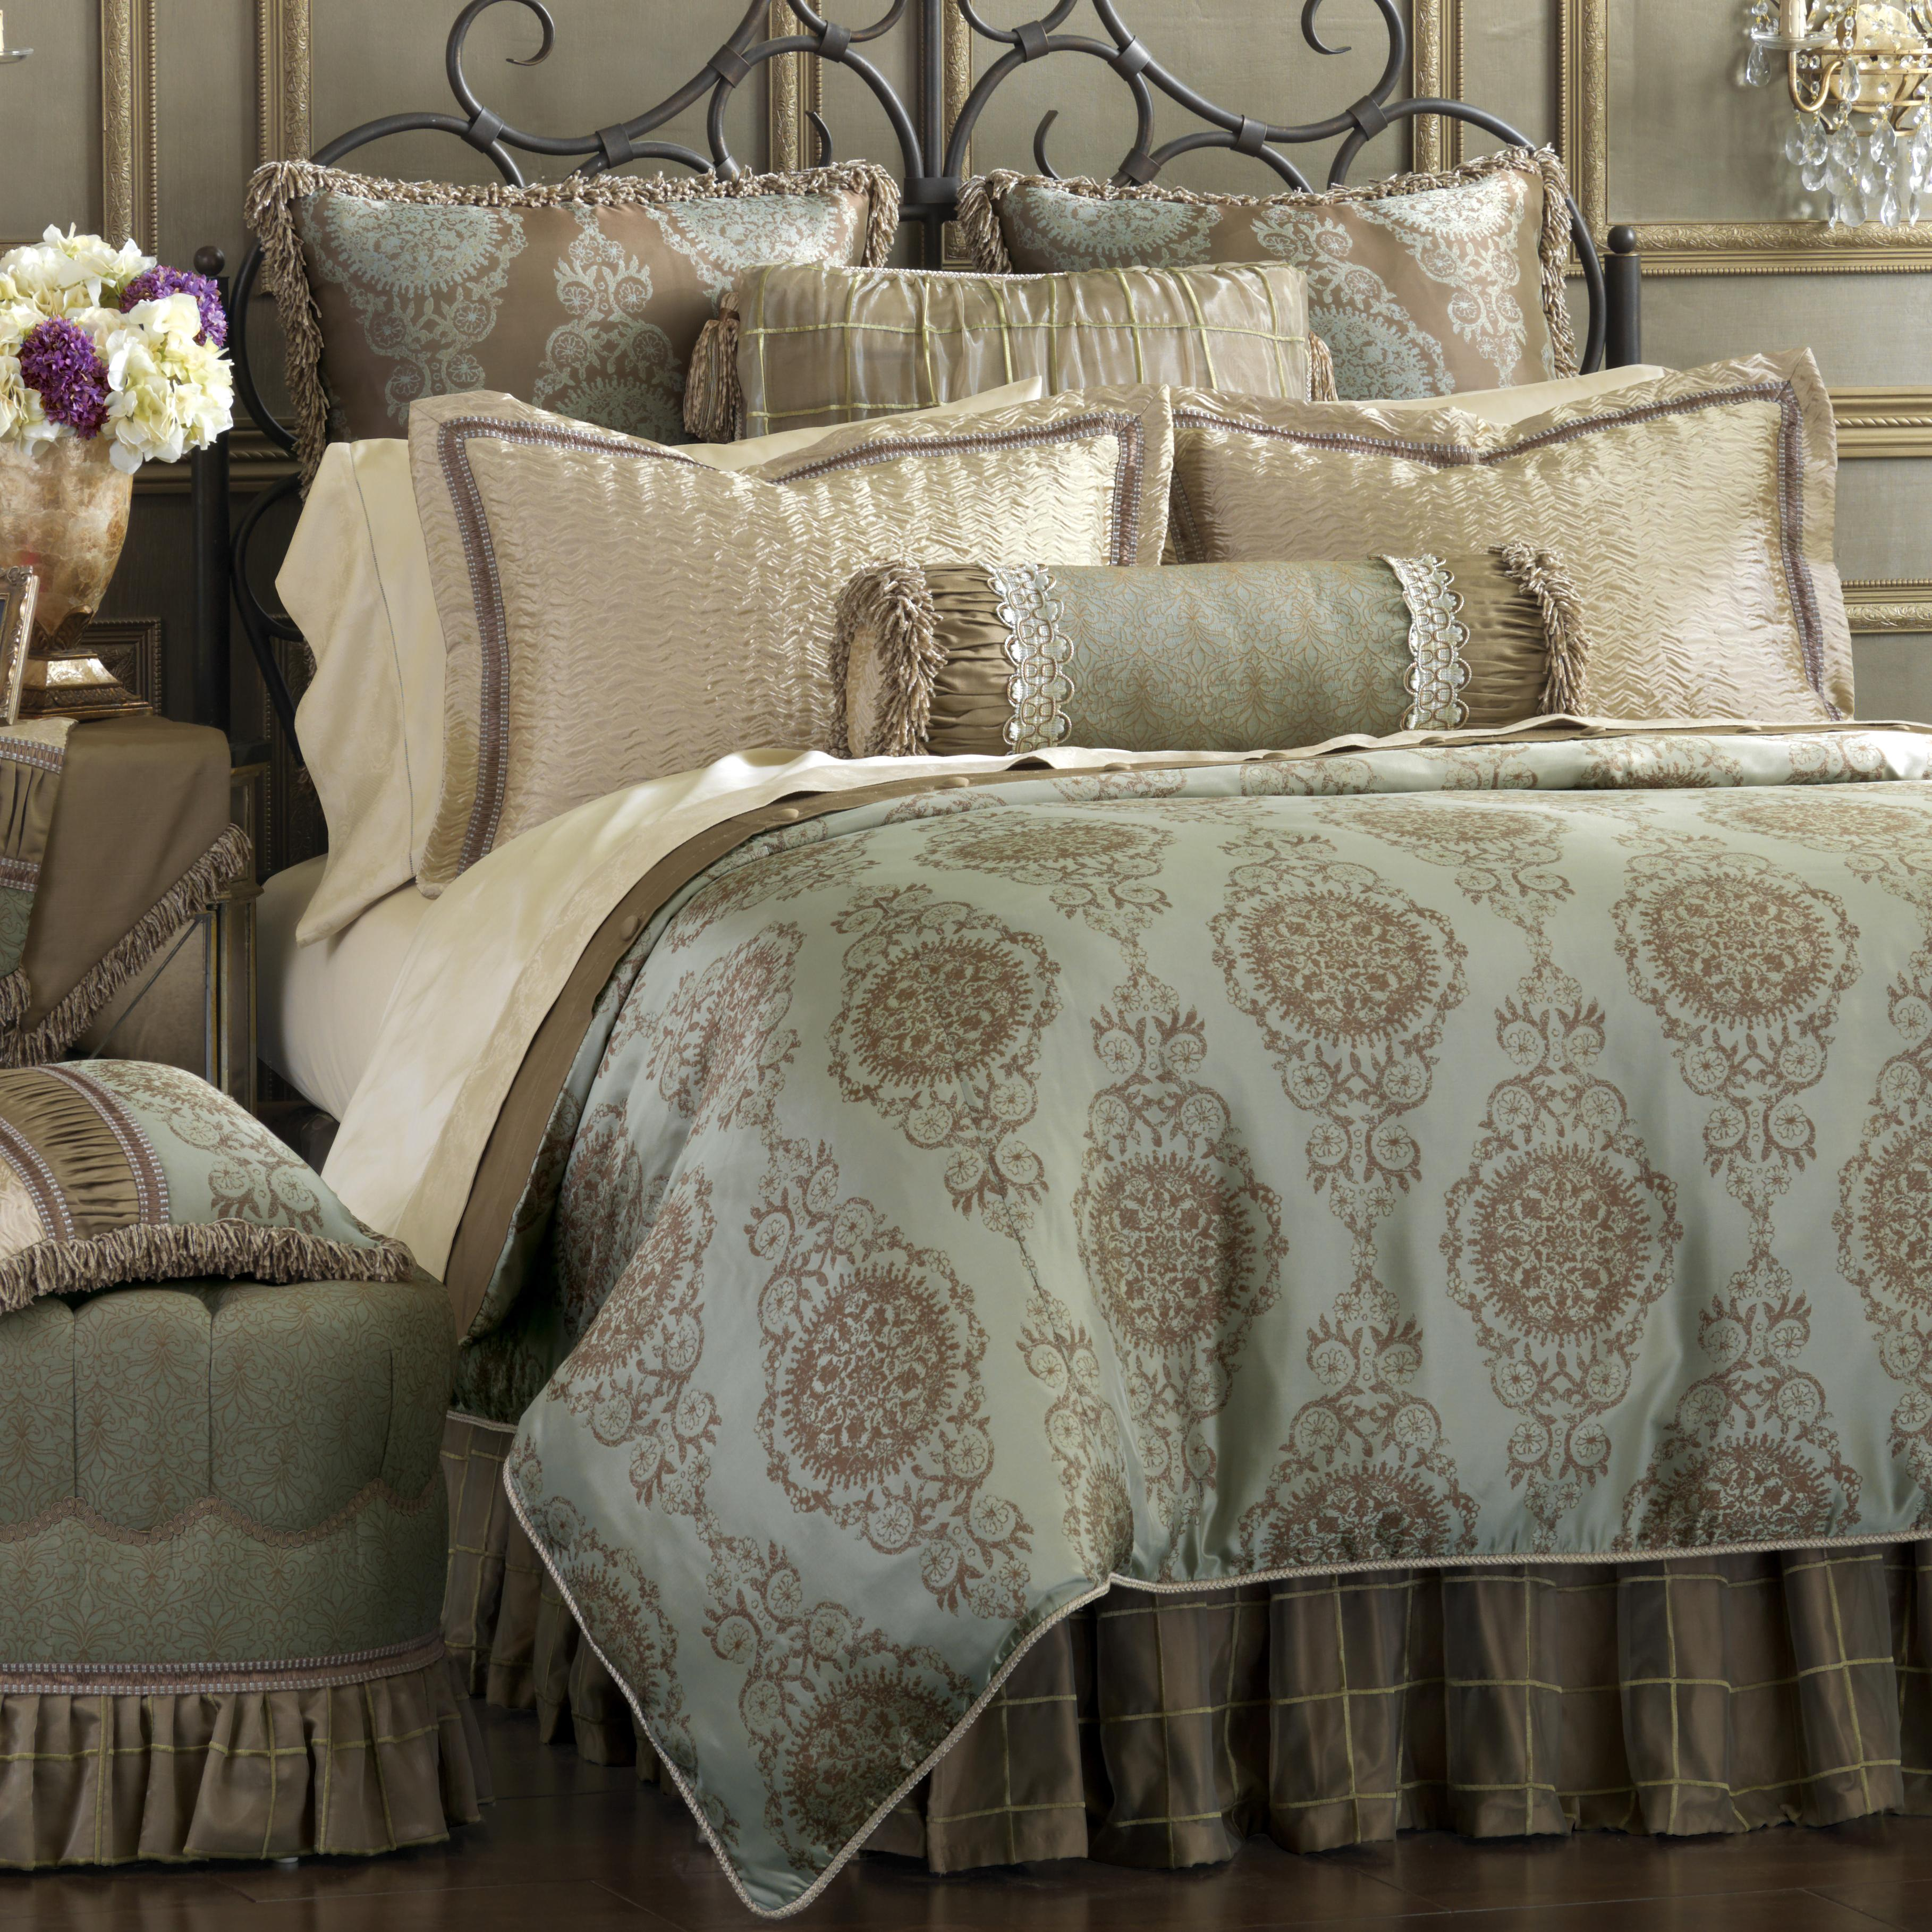 Marbella King Duvet Cover by Eastern Accents at Michael Alan Furniture & Design